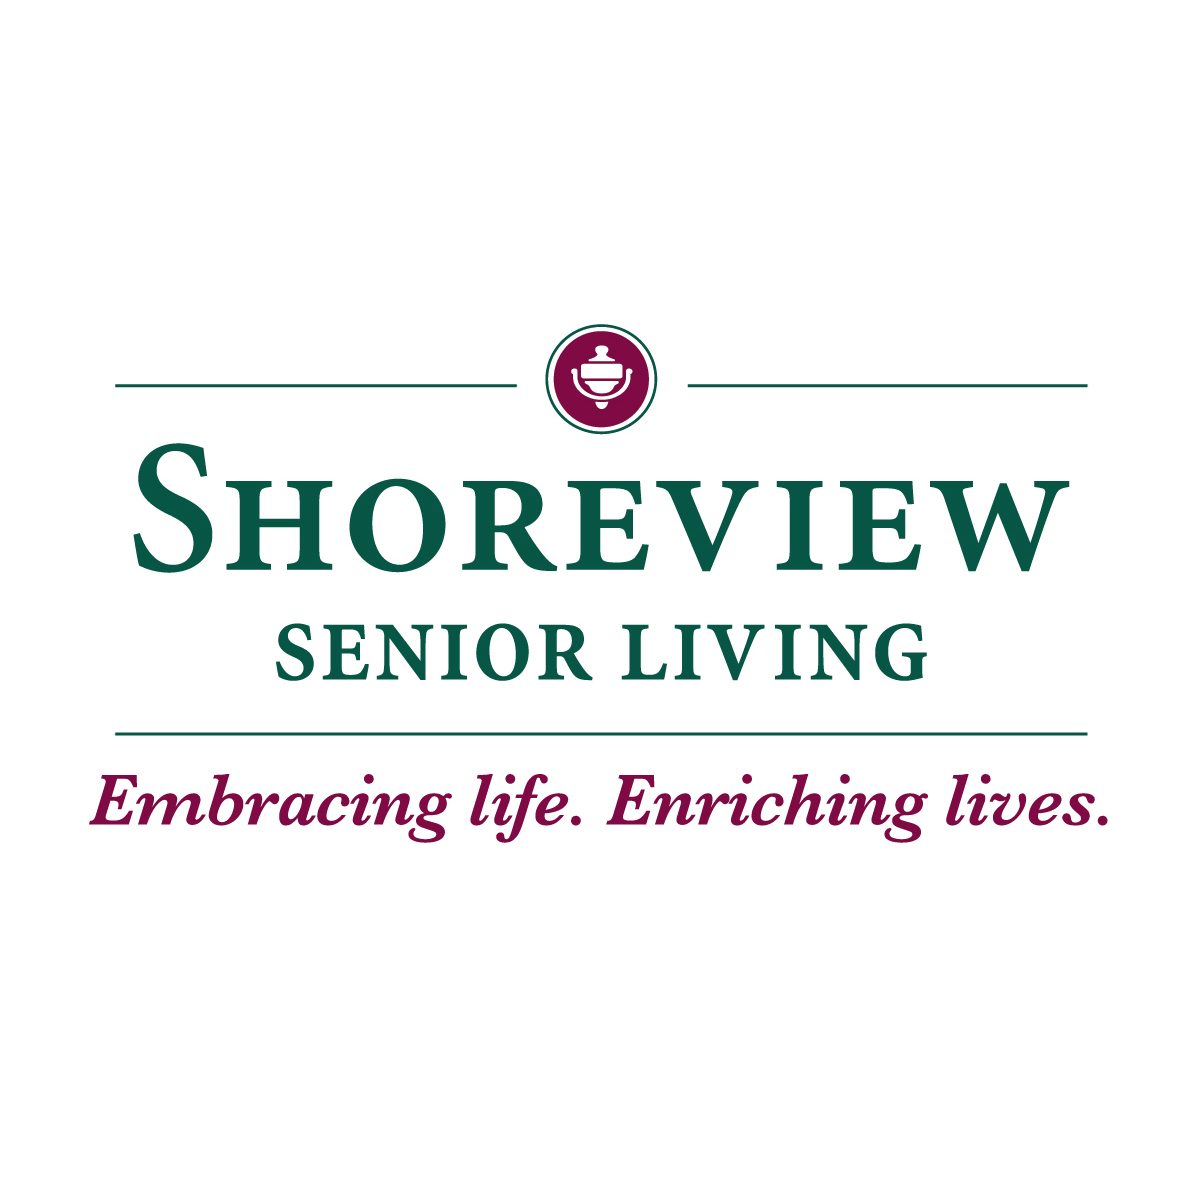 Shoreview Senior Living